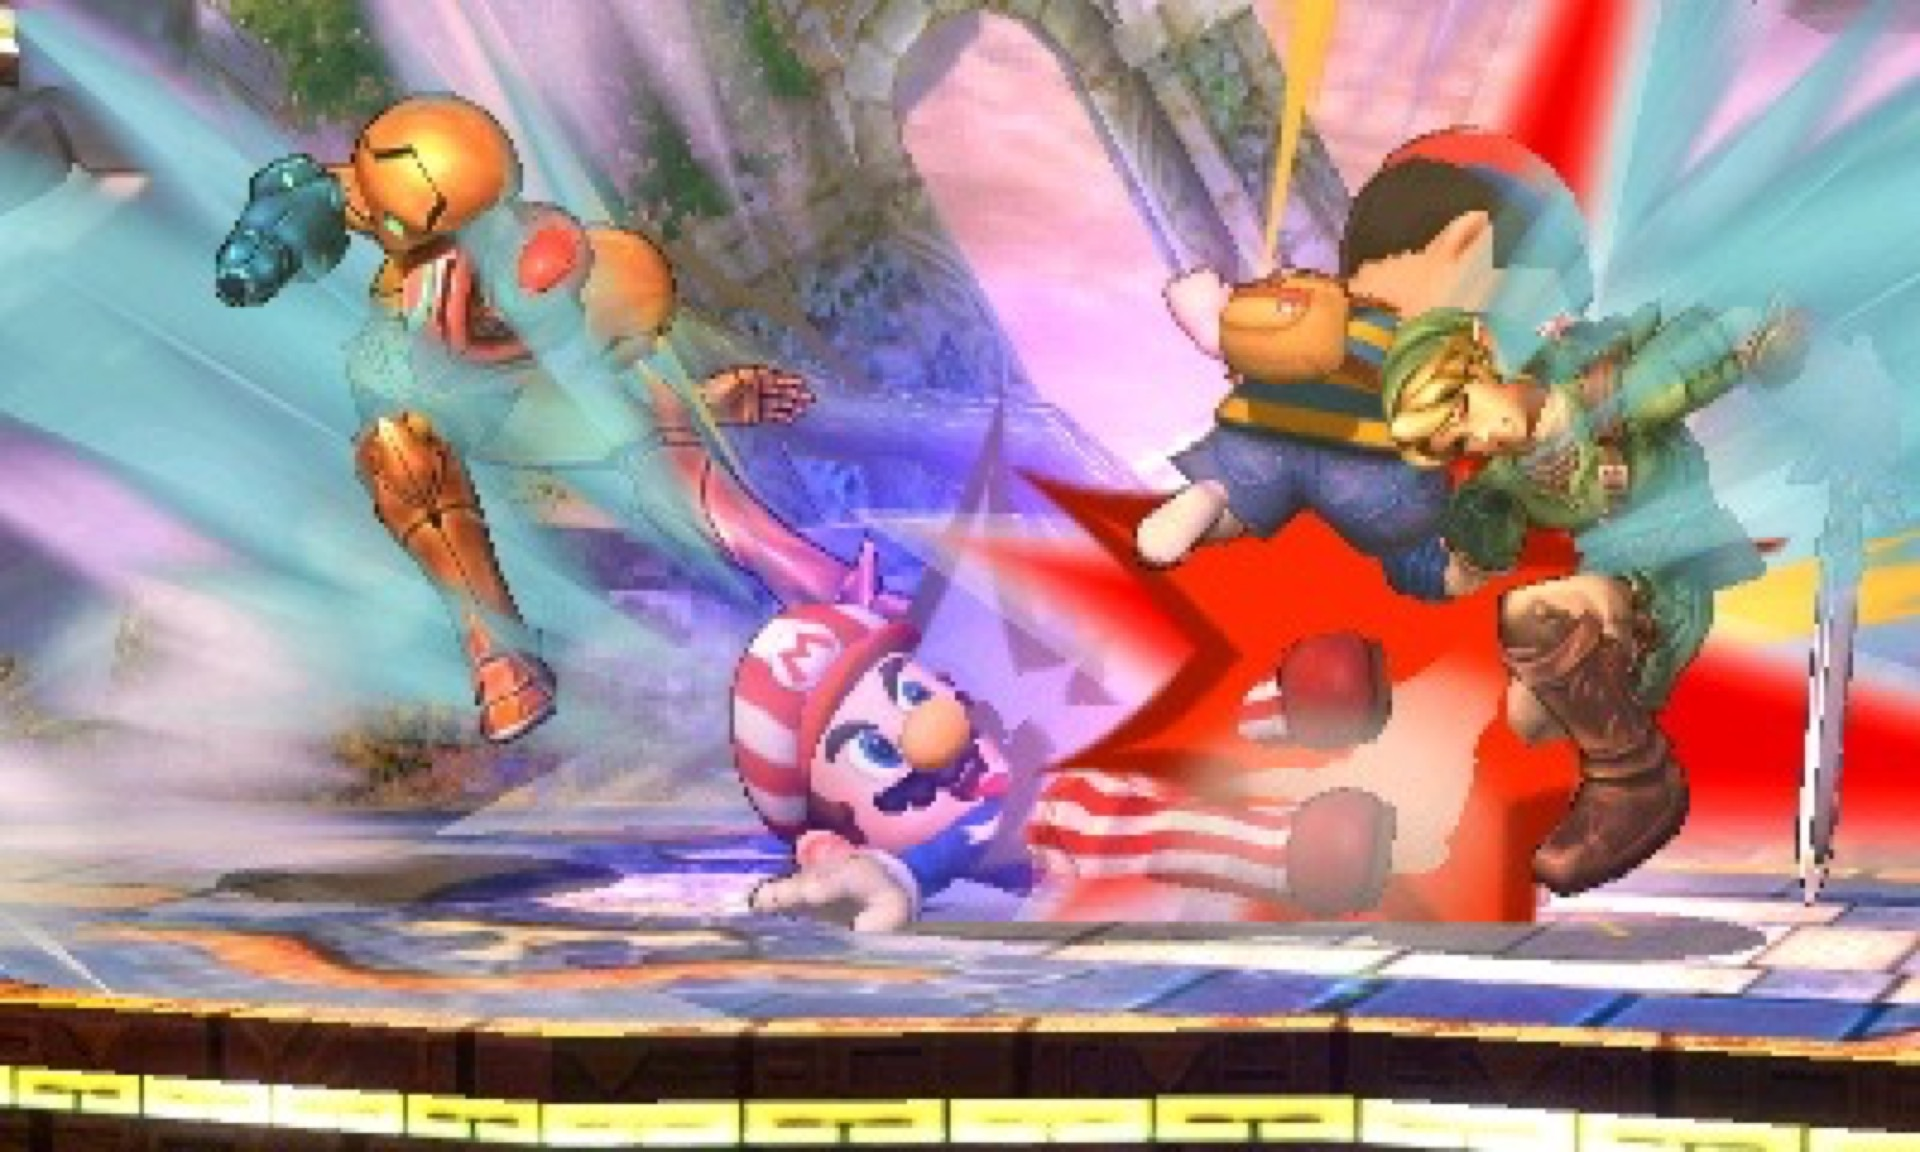 The <i>Smash Bros.</i> series has always sought to find which video game character would win in a fight.